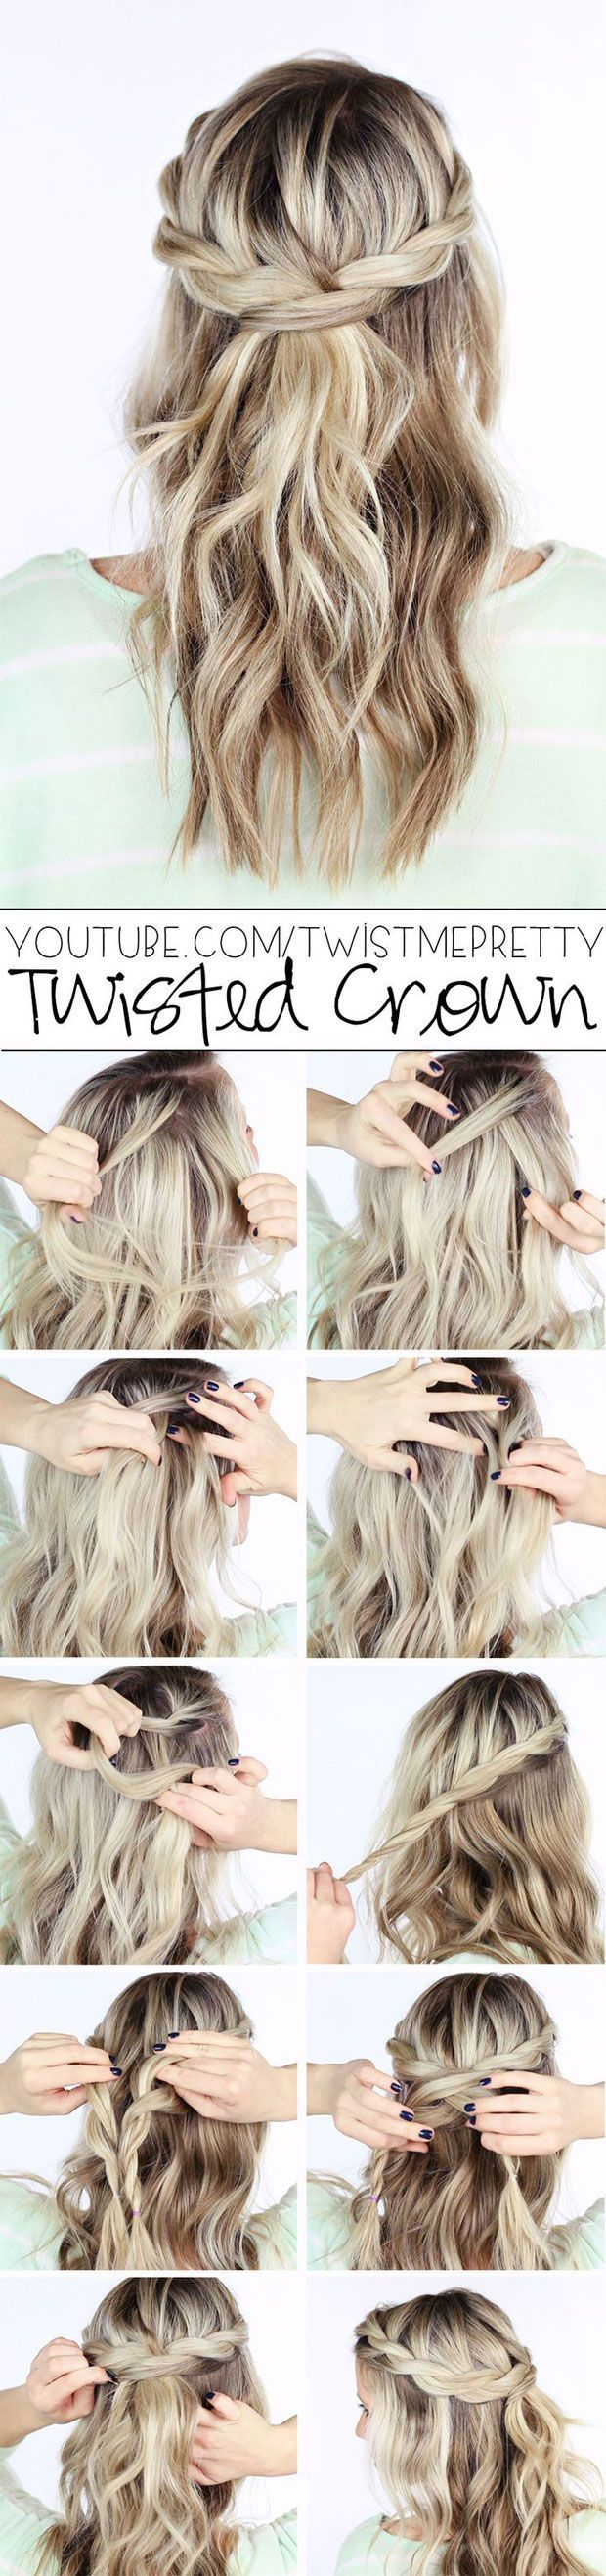 pinterest hair tutorials you need to try page of braid